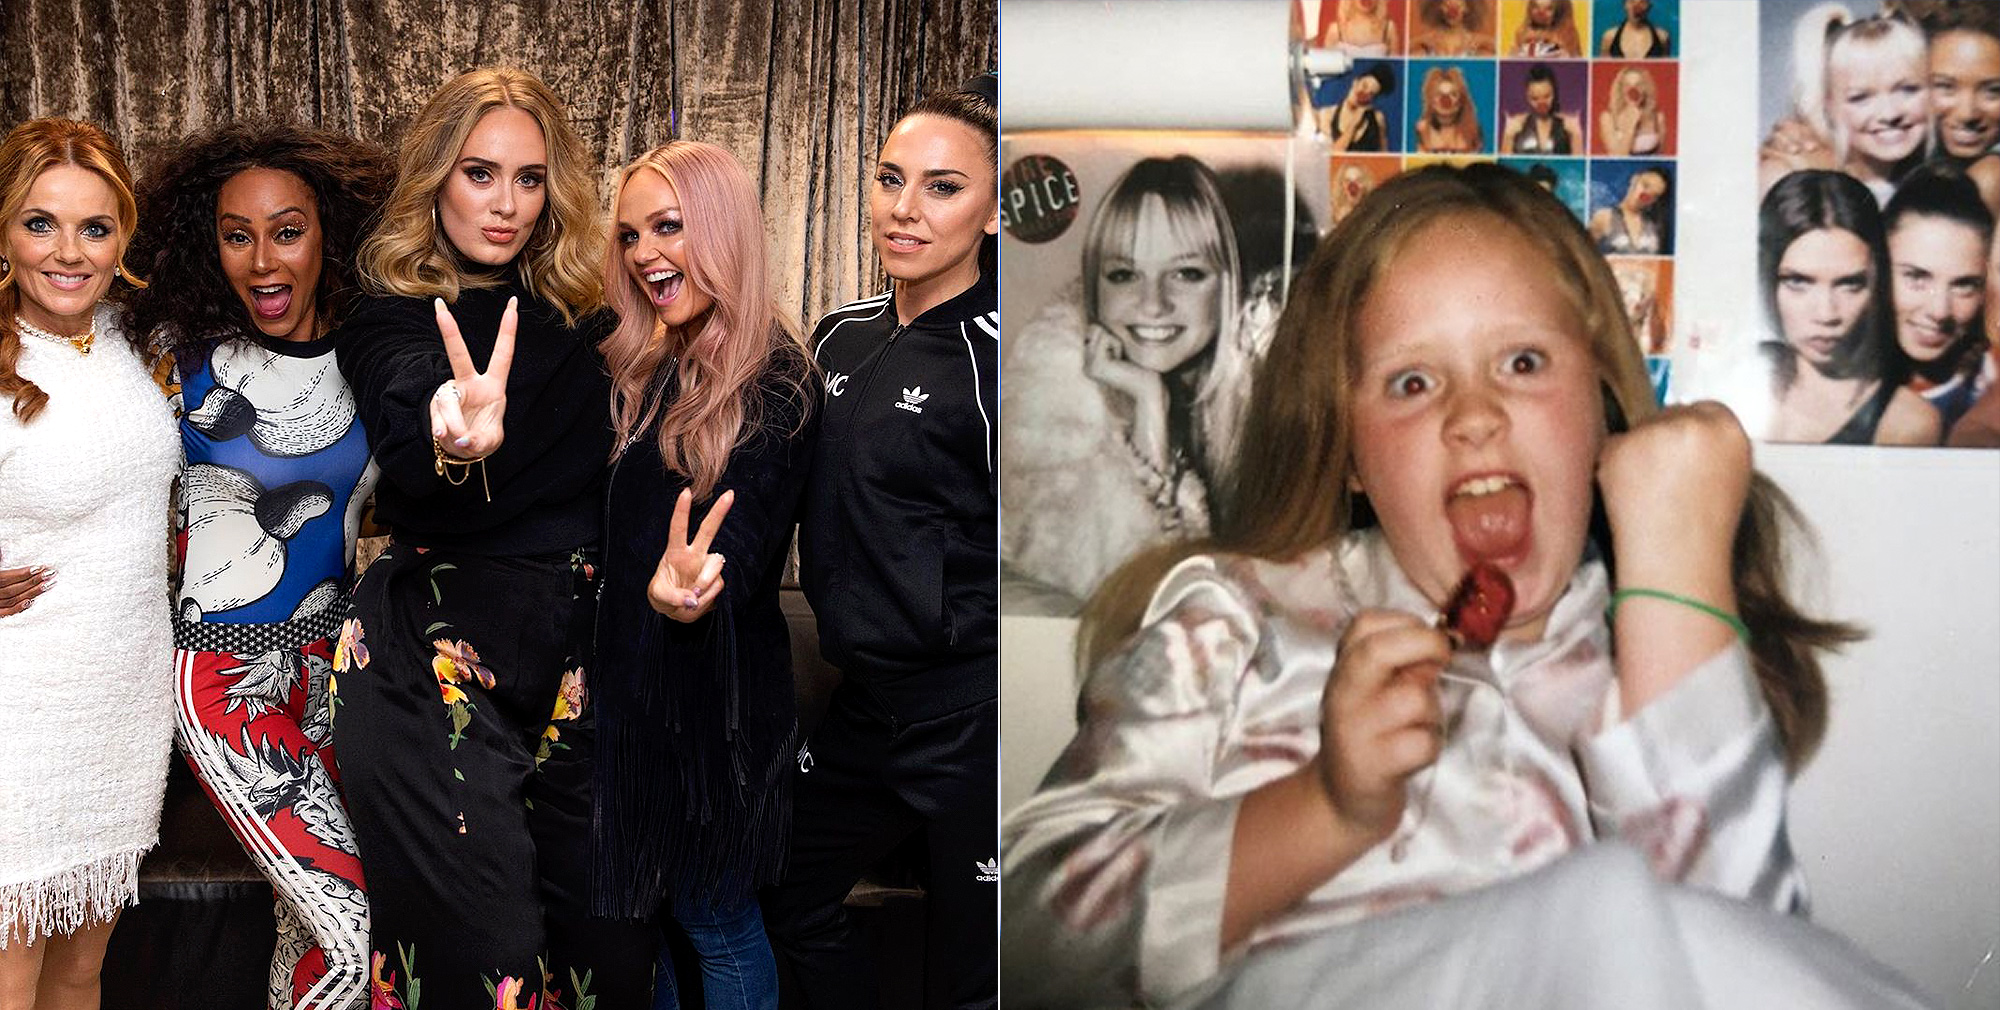 Spice Girls and Adele